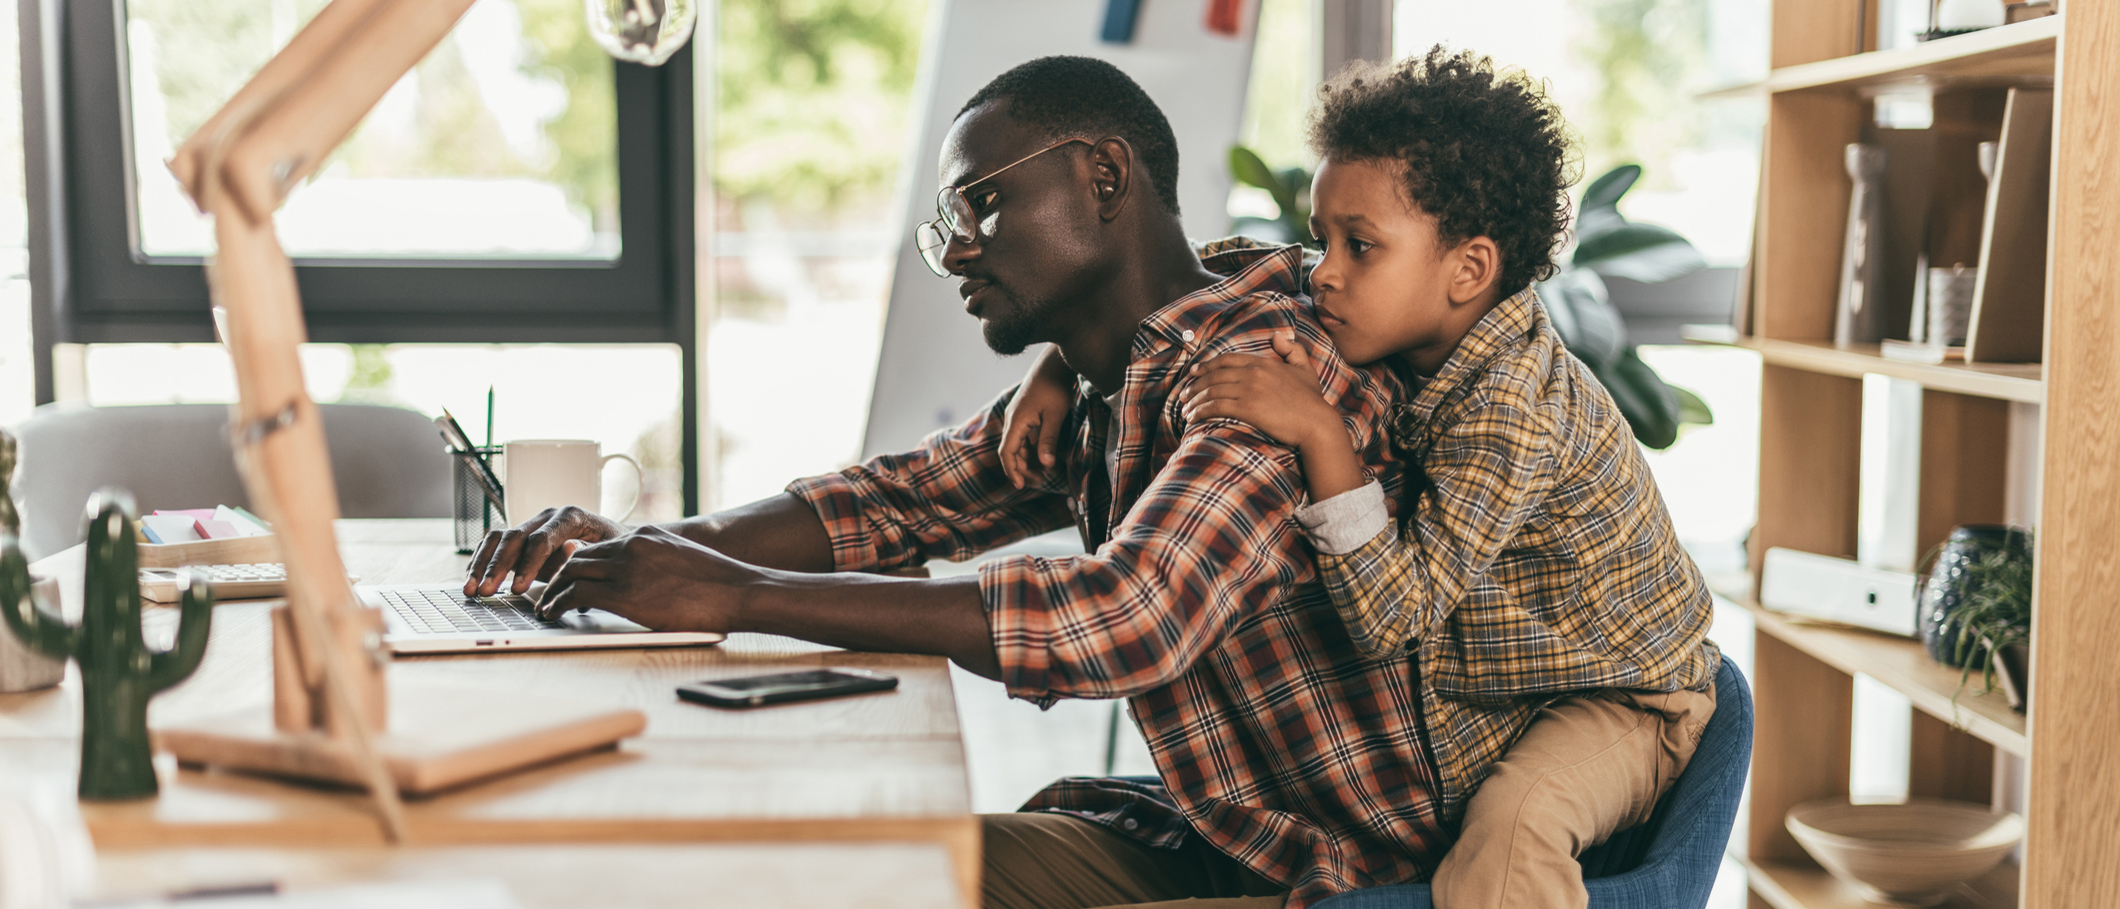 Man working from home while taking care of his son